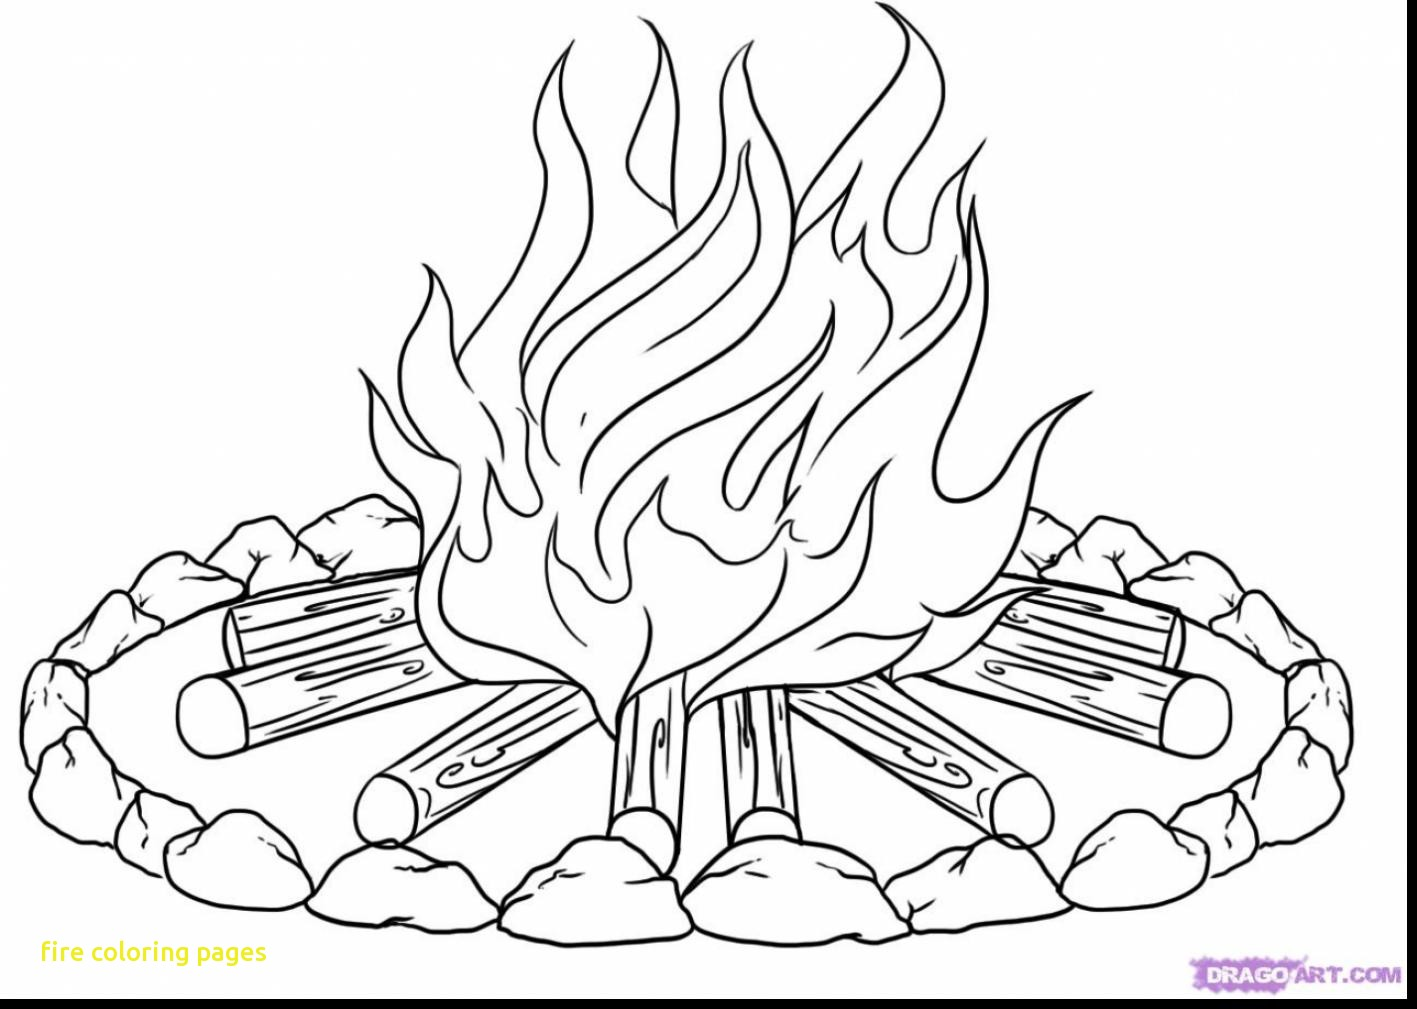 1417x1009 Fire Coloring Pages